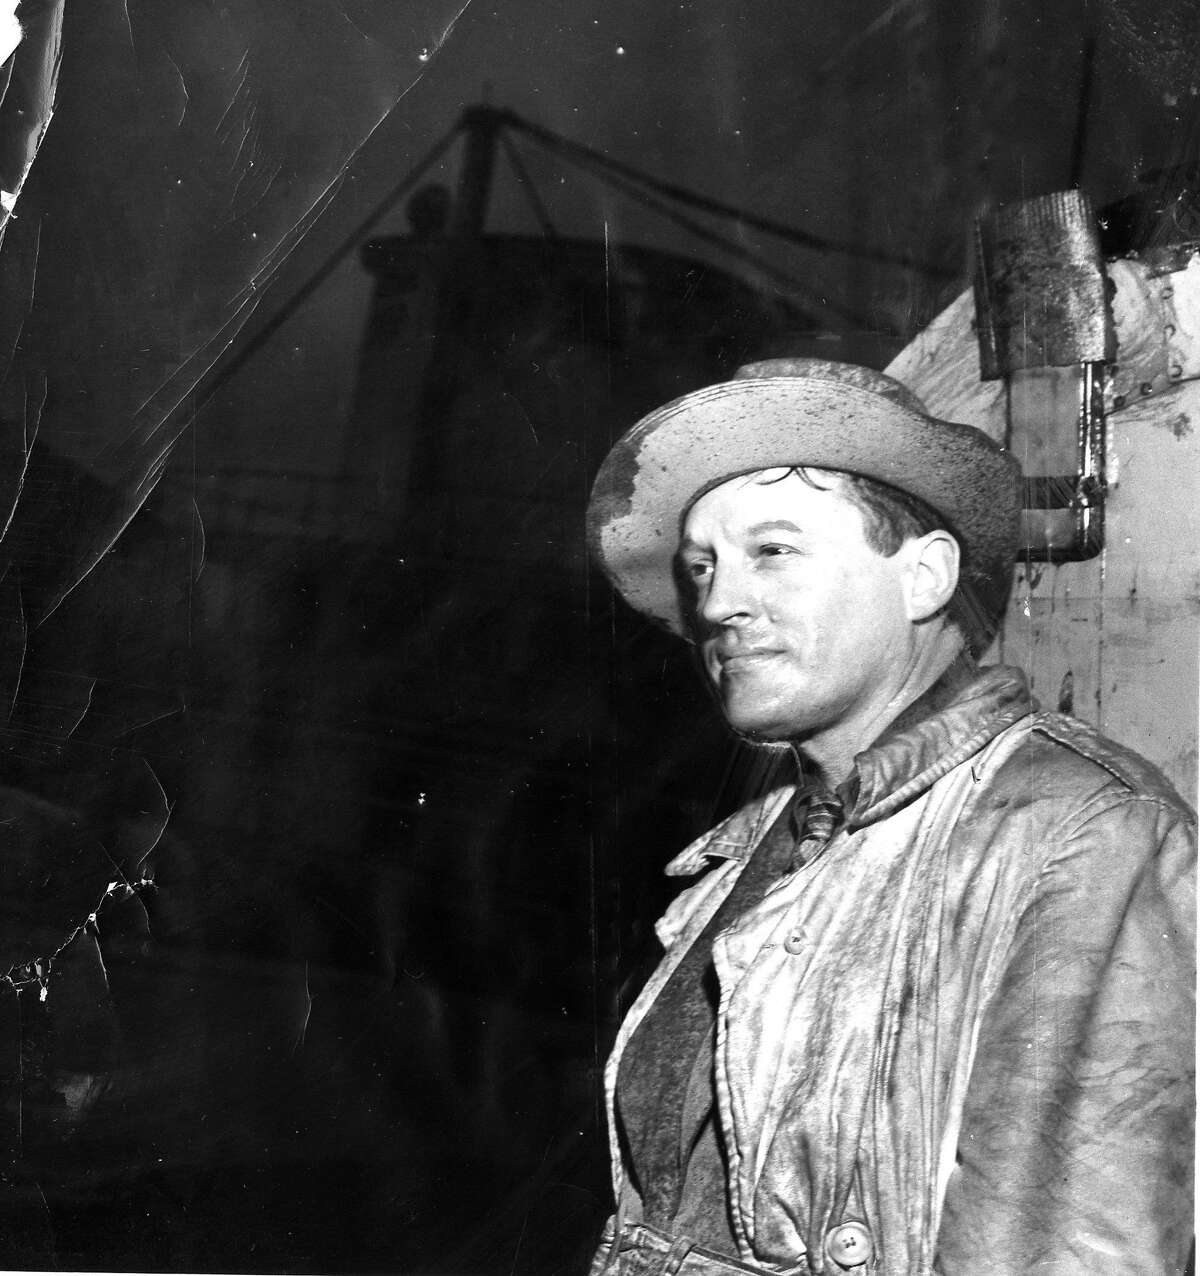 Barney Gould contemplates the sunken Port of Stockton riverboat, he had hoped to convert into a showboat and restaurant, March 12, 1952 Phot ran 3/26/1953, p. 18